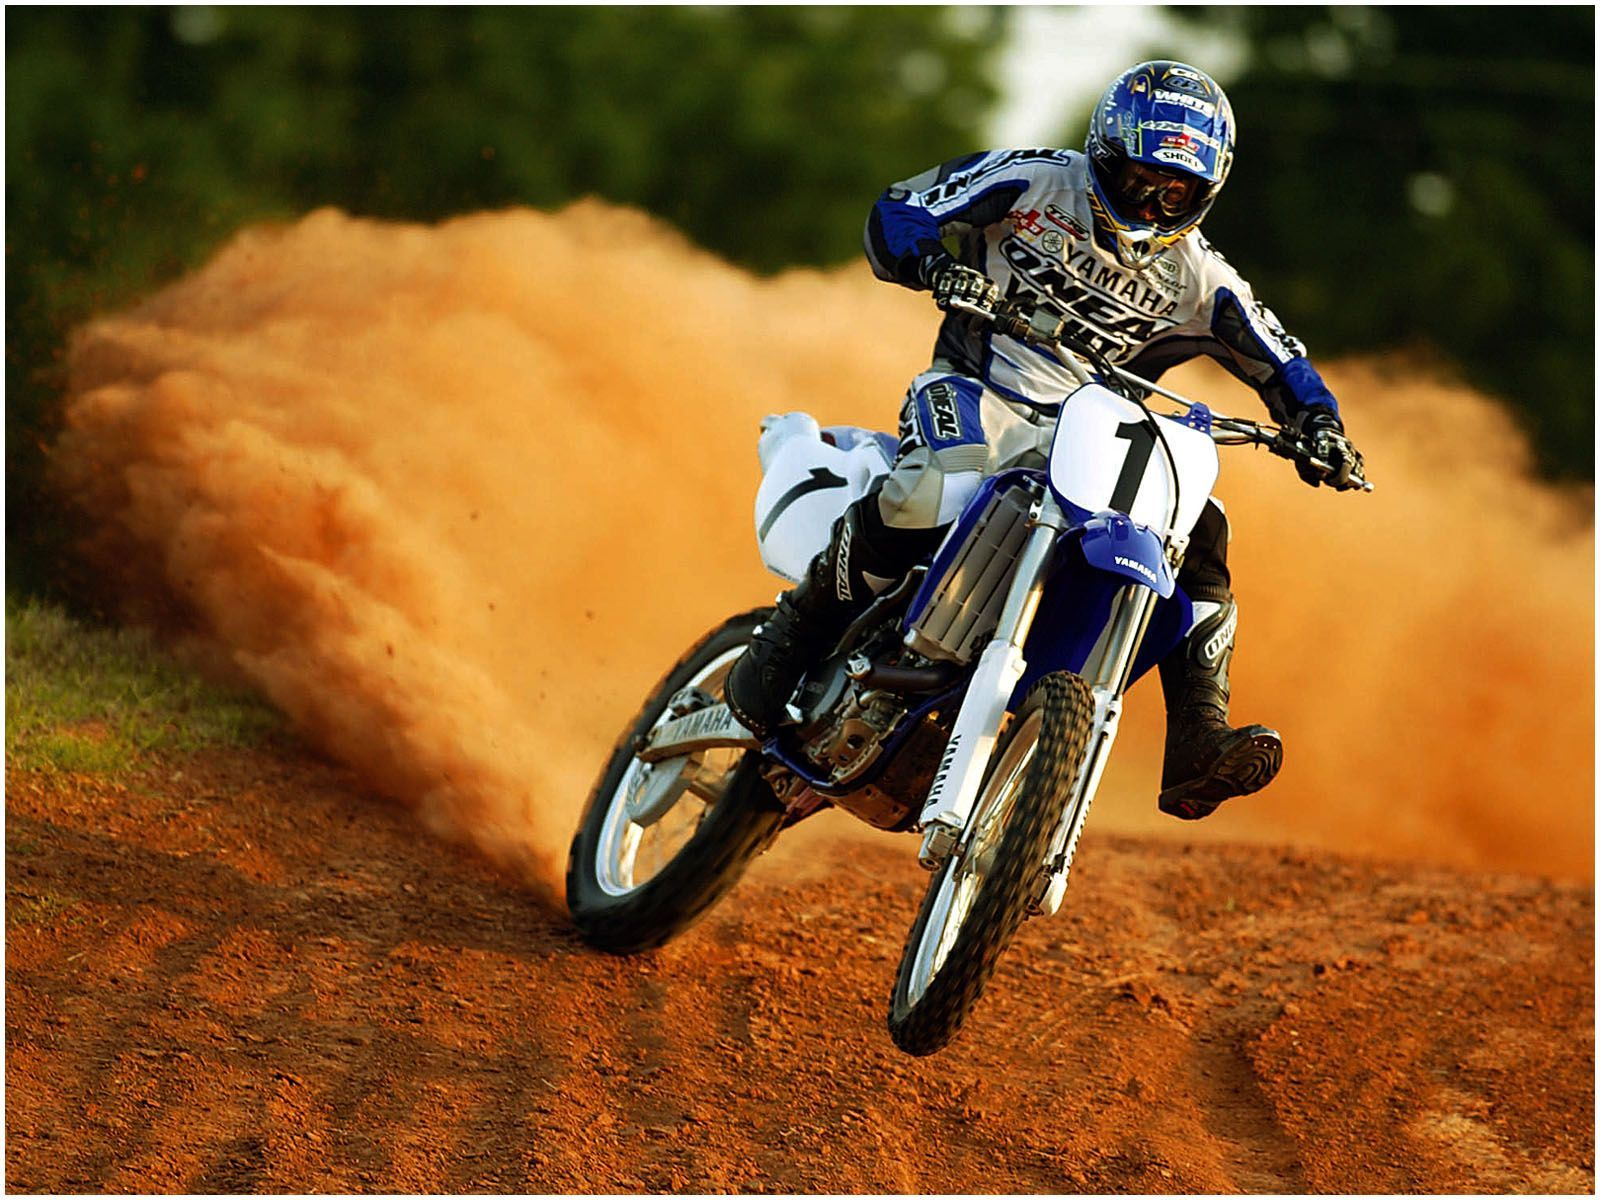 Yamaha Dirt Bike Wallpapers Top Free Yamaha Dirt Bike